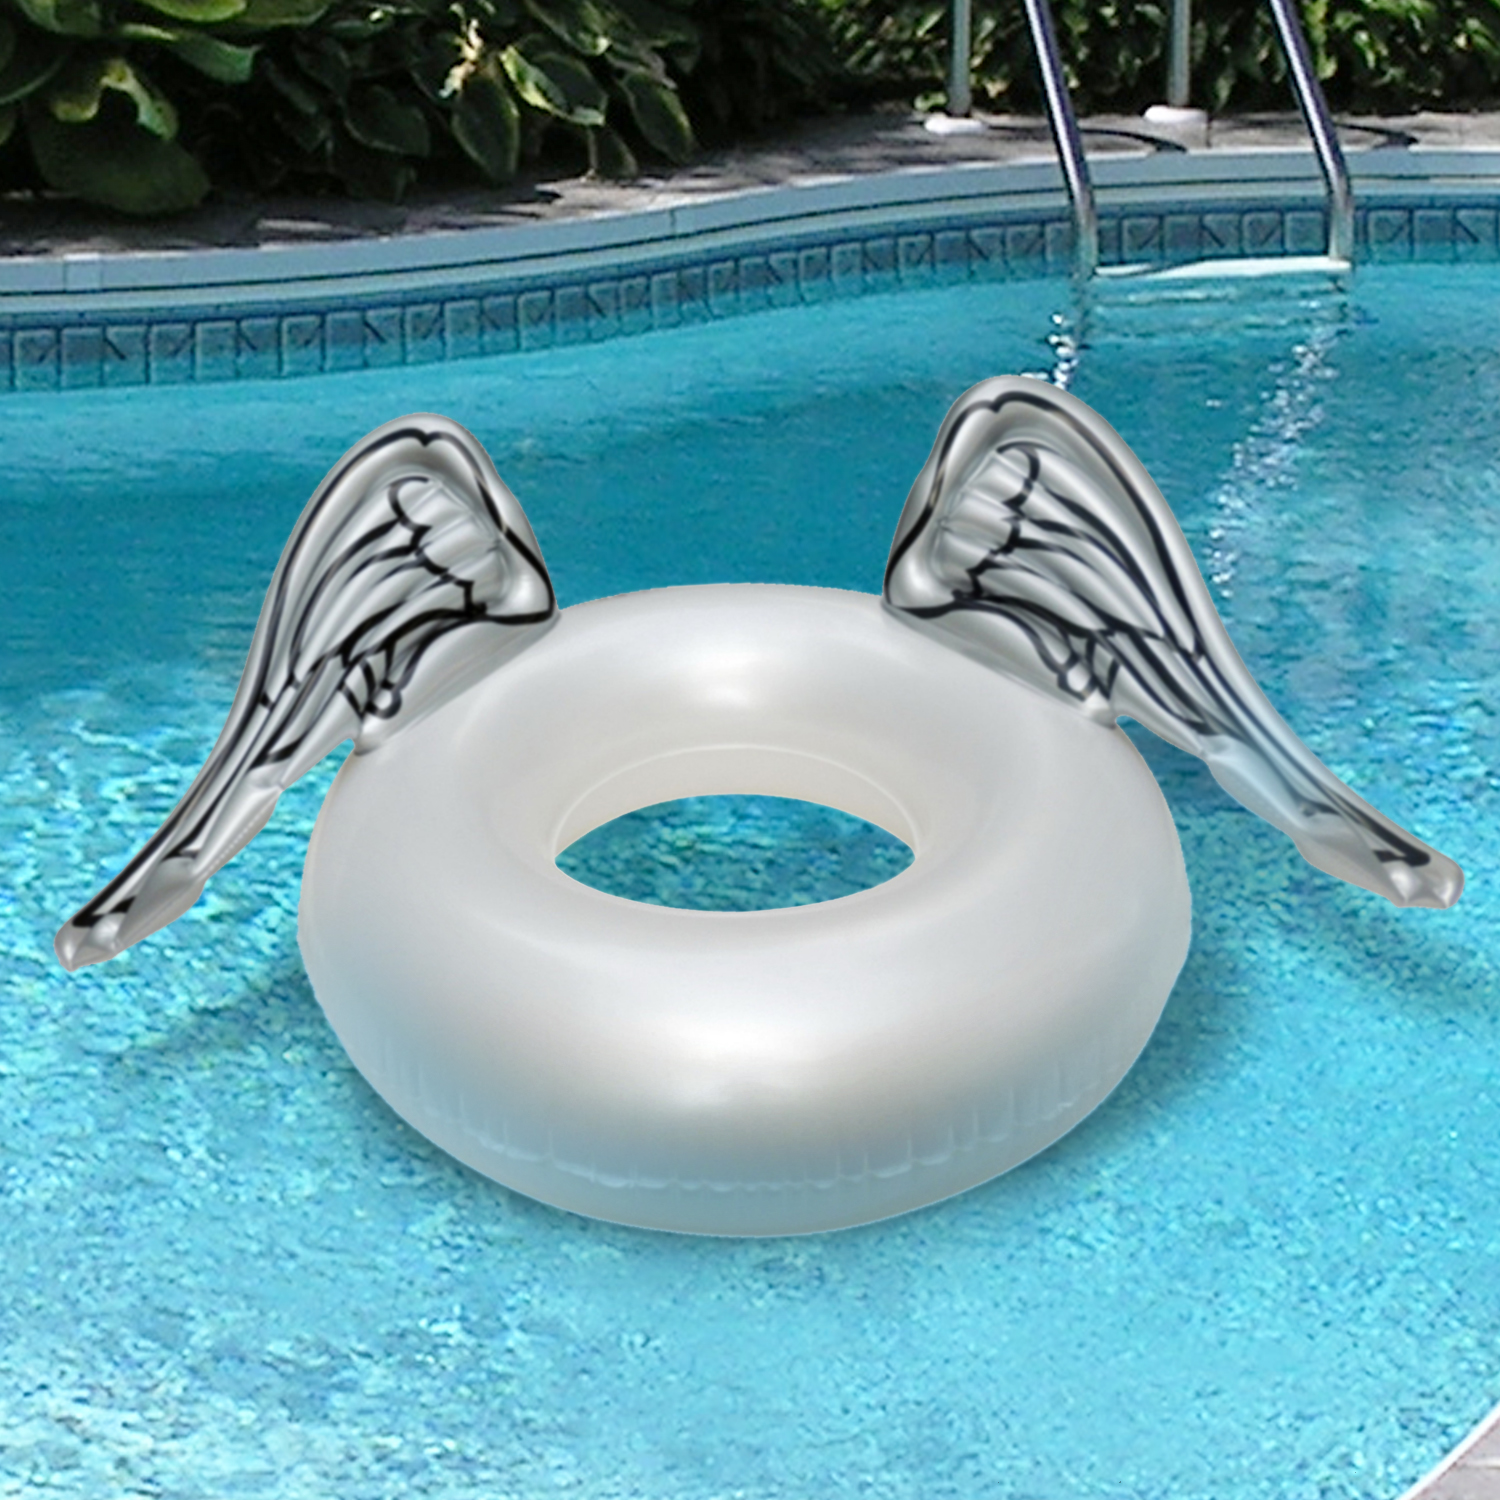 Guaranteed4Less Giant Inflatable Swim Rings Angel Wings Lilo Lounger Swimming Pool Float Beach